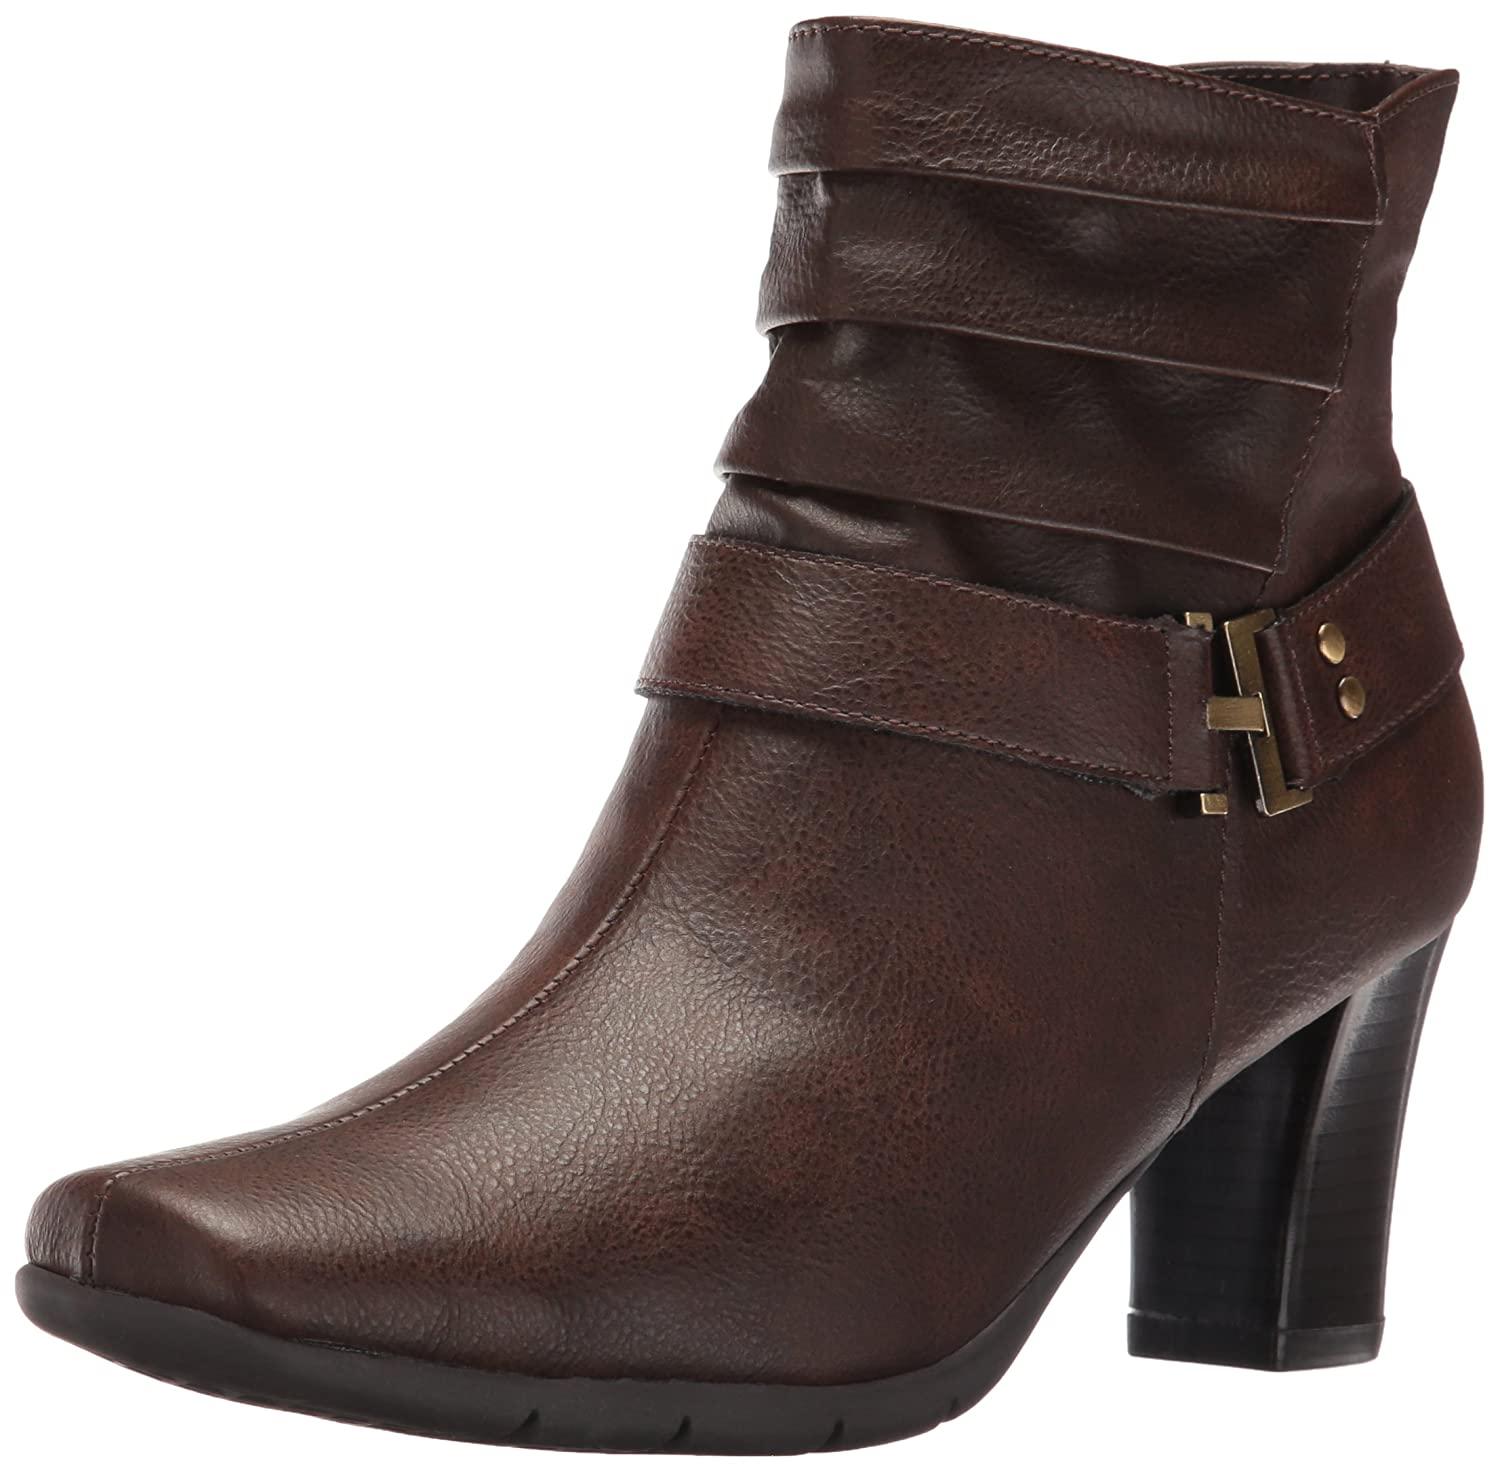 A2 by Aerosoles Women's Common Ground Boot, Brown, 10.5 M US